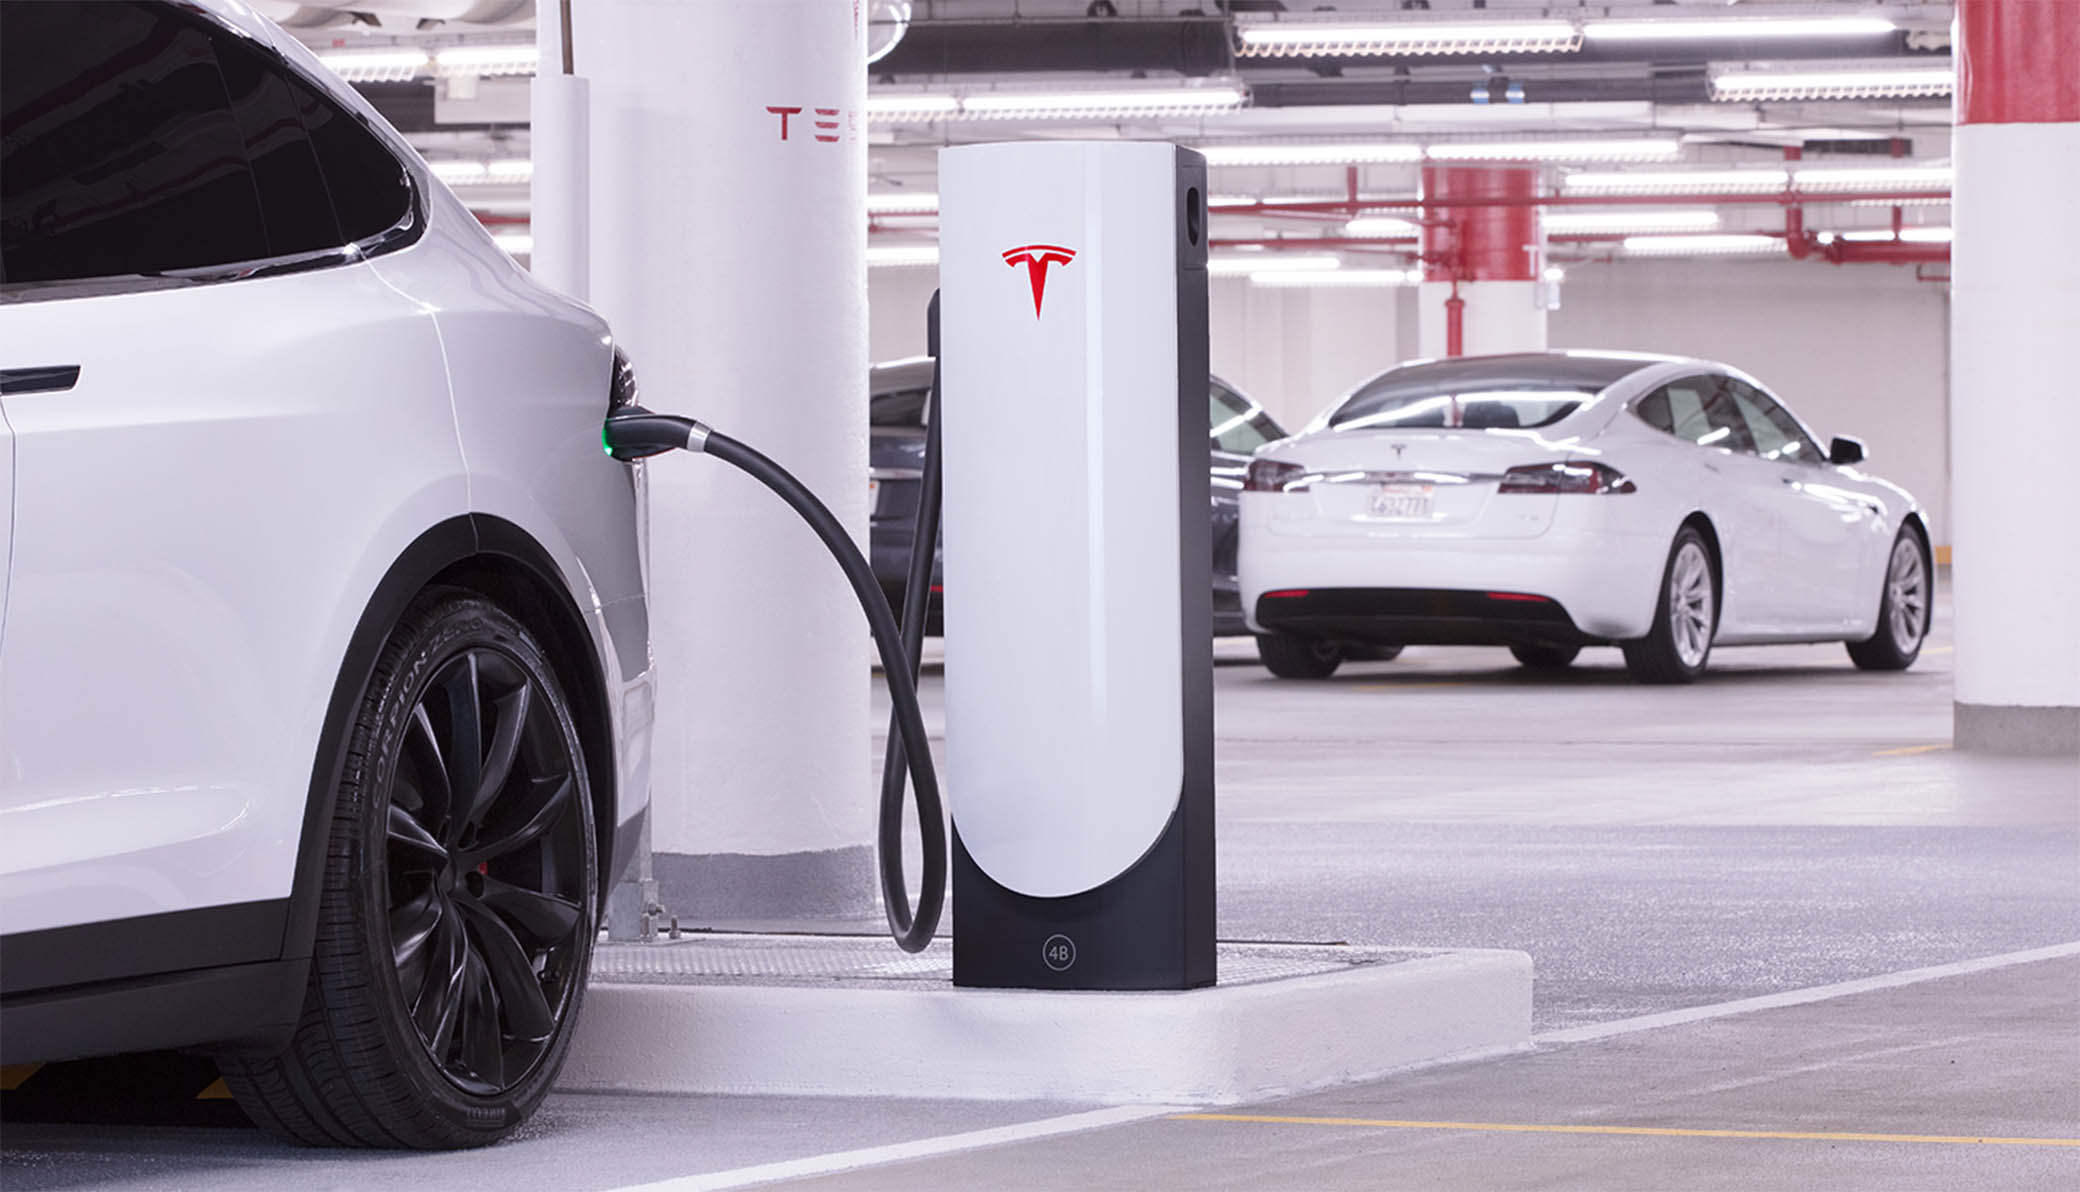 Tesla to add more Supercharger stations to inner cities